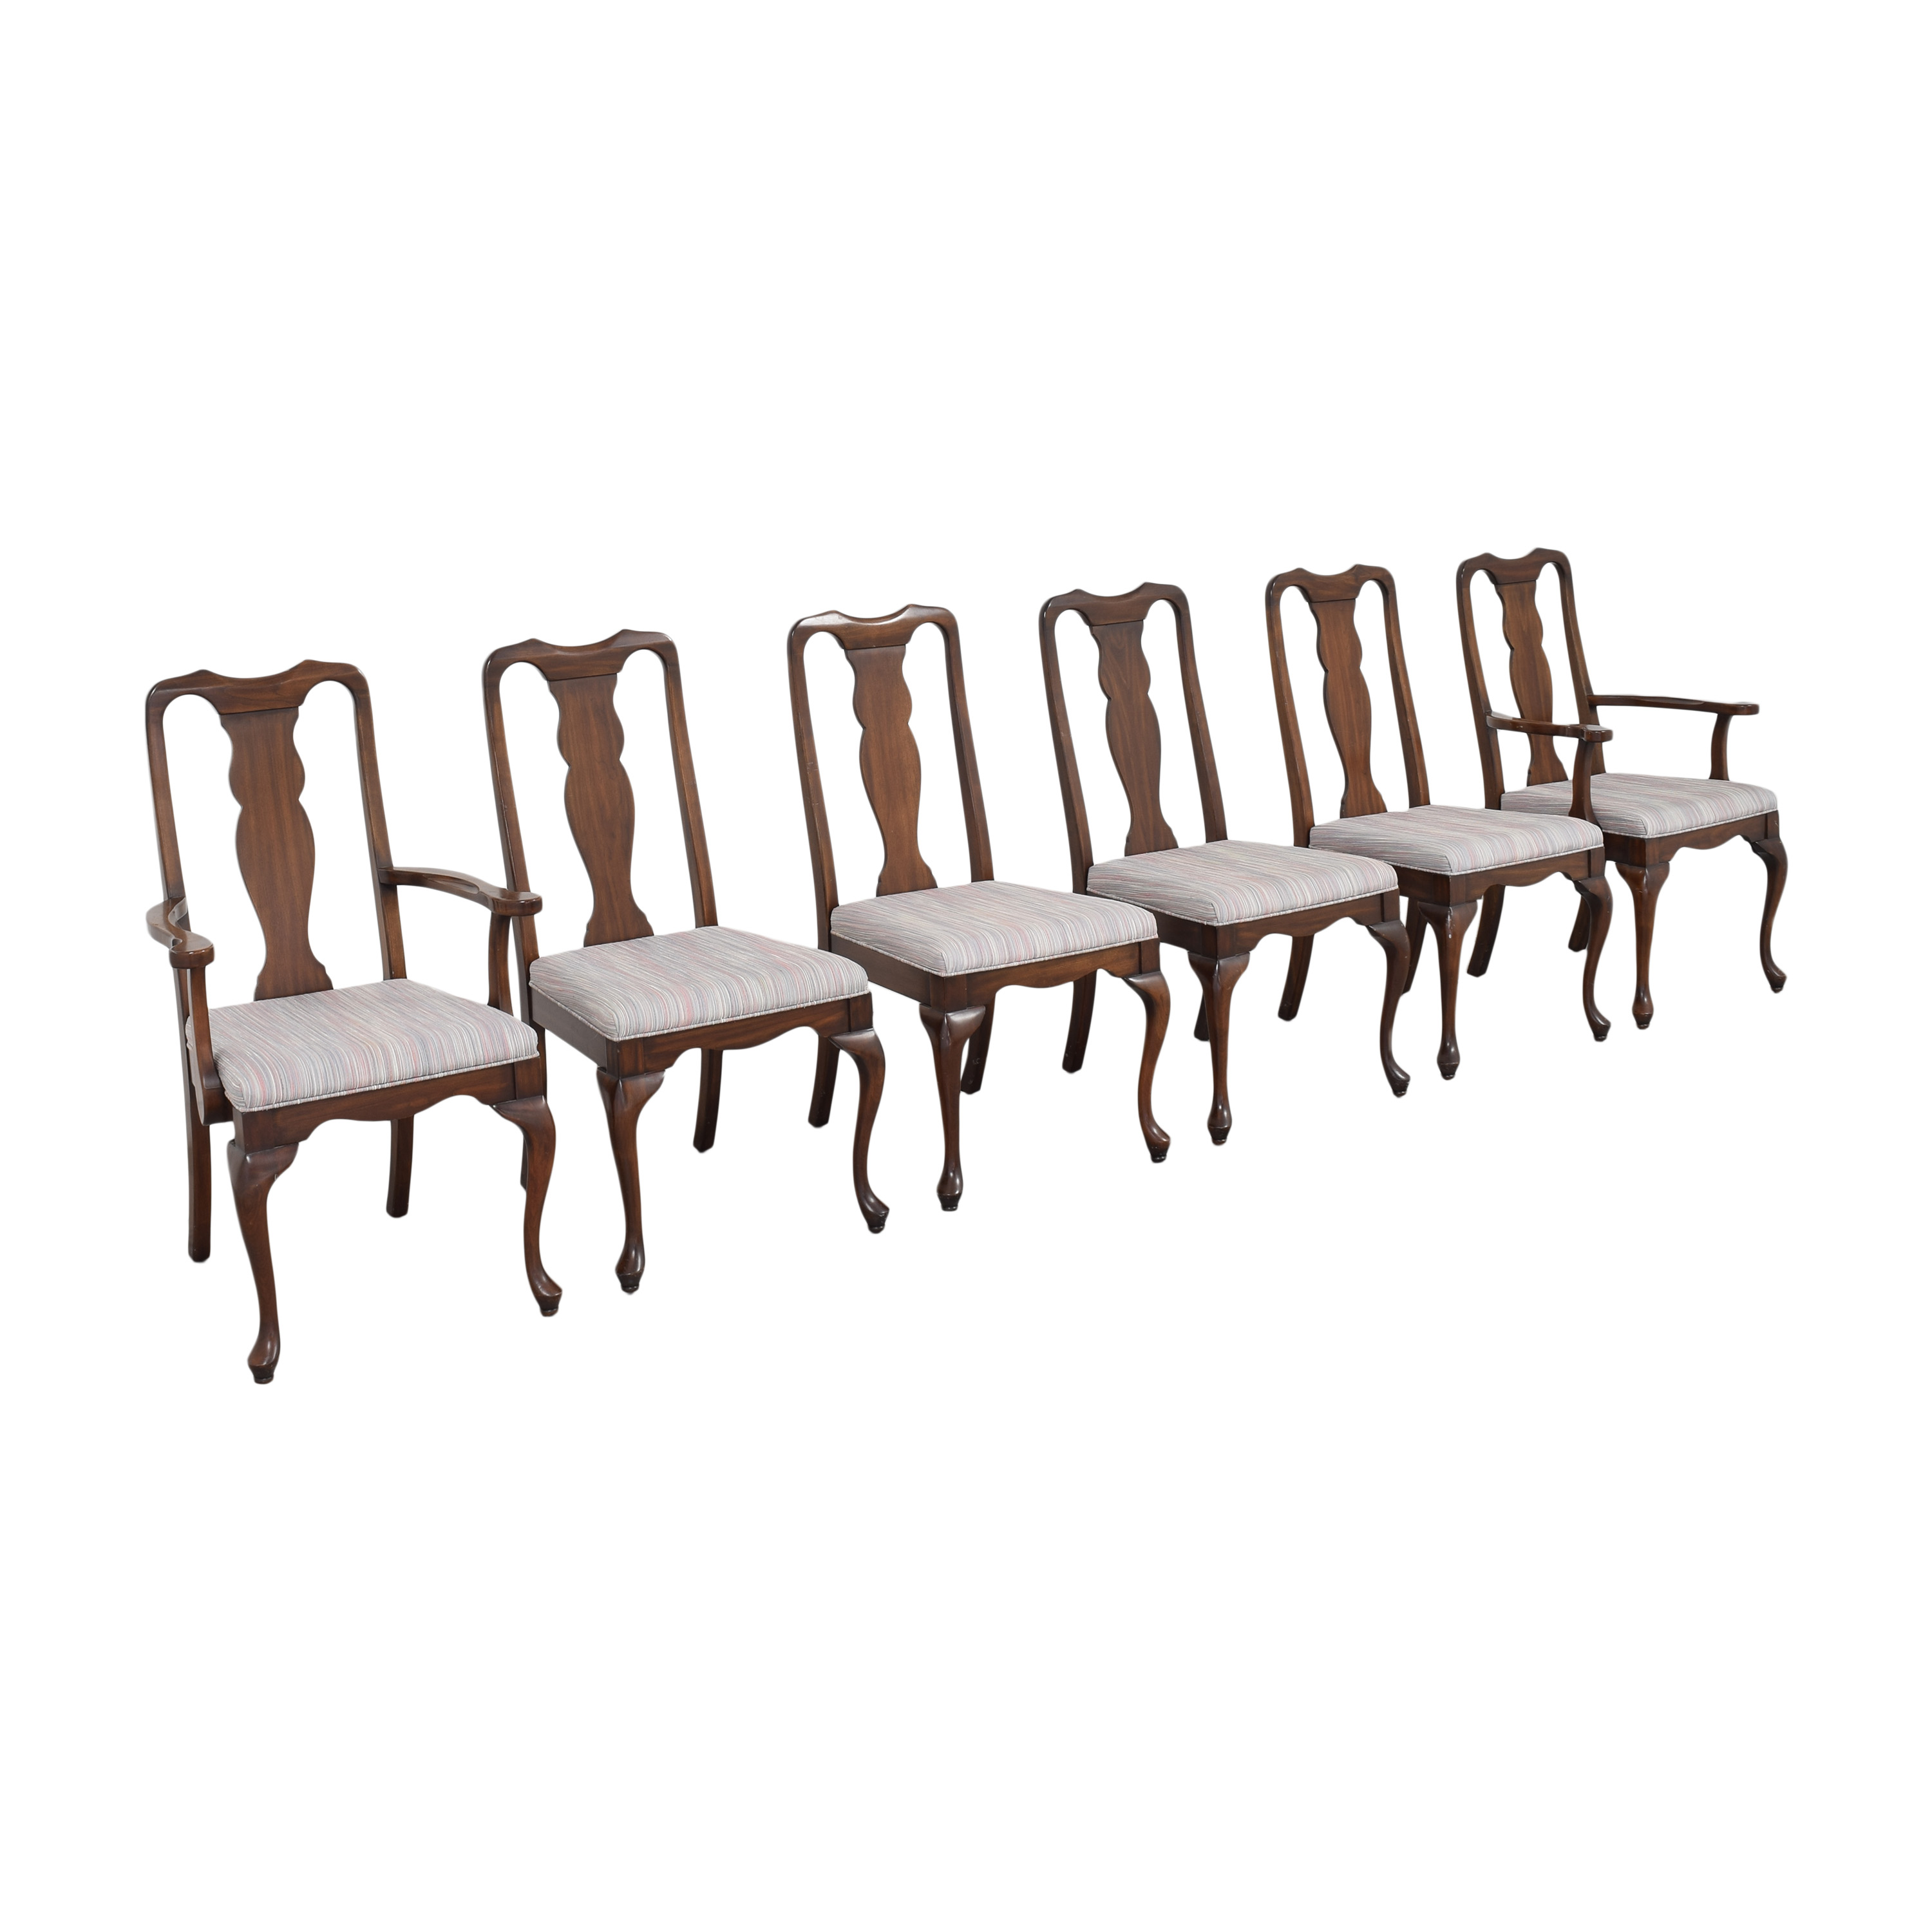 buy Harden Upholstered Dining Chairs Harden Chairs